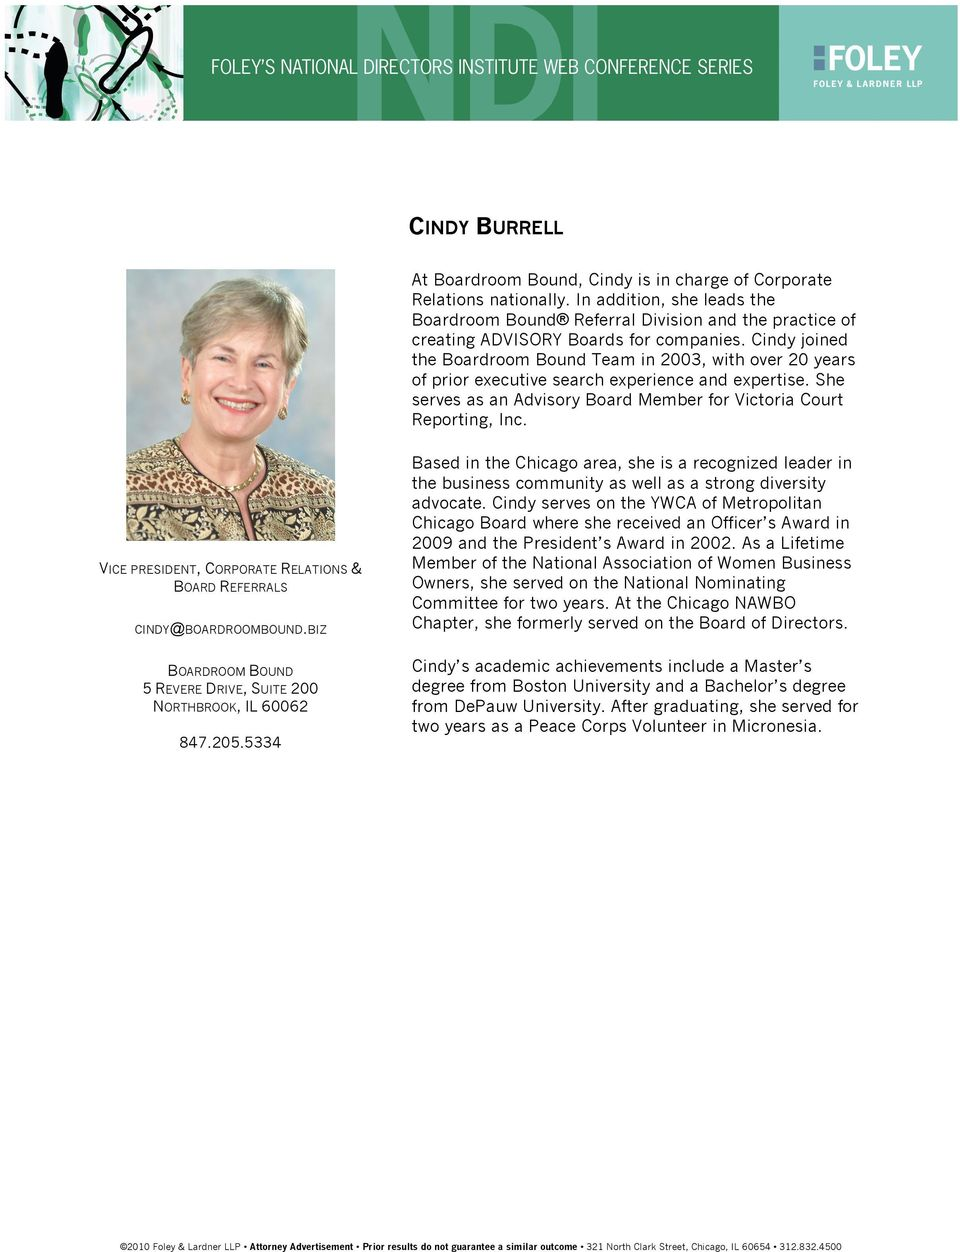 Cindy joined the Boardroom Bound Team in 2003, with over 20 years of prior executive search experience and expertise. She serves as an Advisory Board Member for Victoria Court Reporting, Inc.